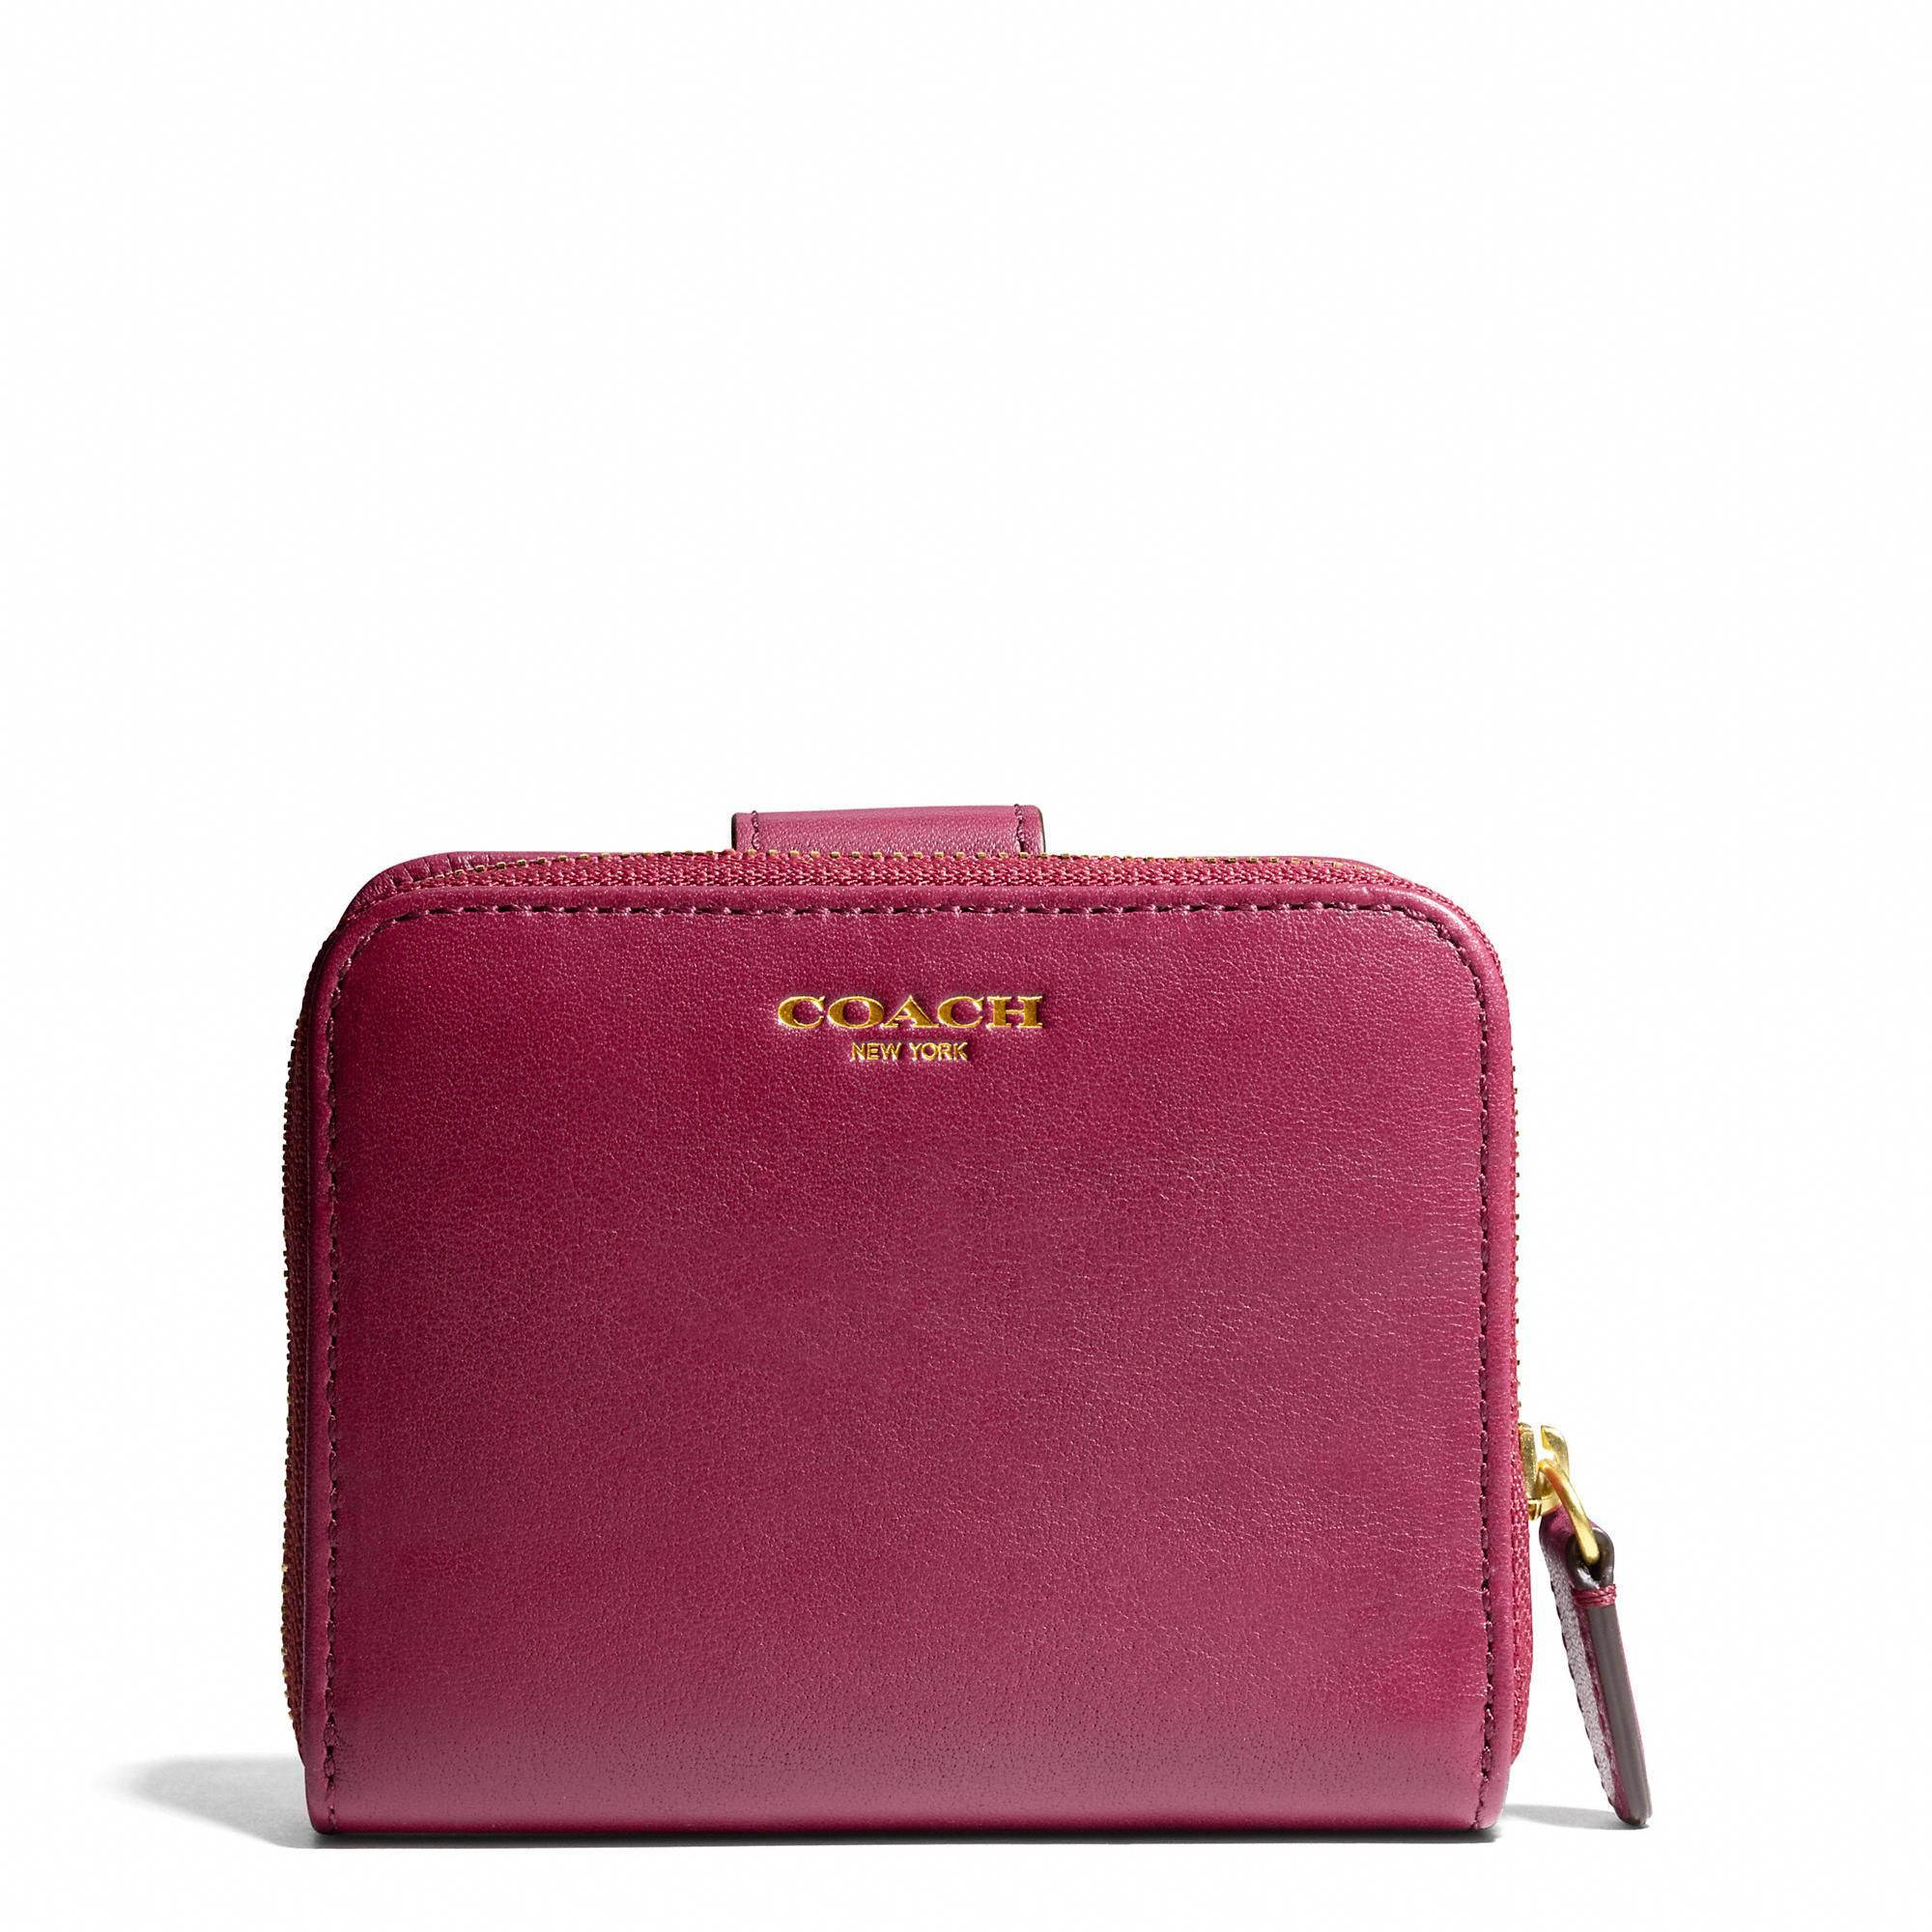 bc27fdb868 The Legacy Medium Zip Around Wallet in Leather from Coach